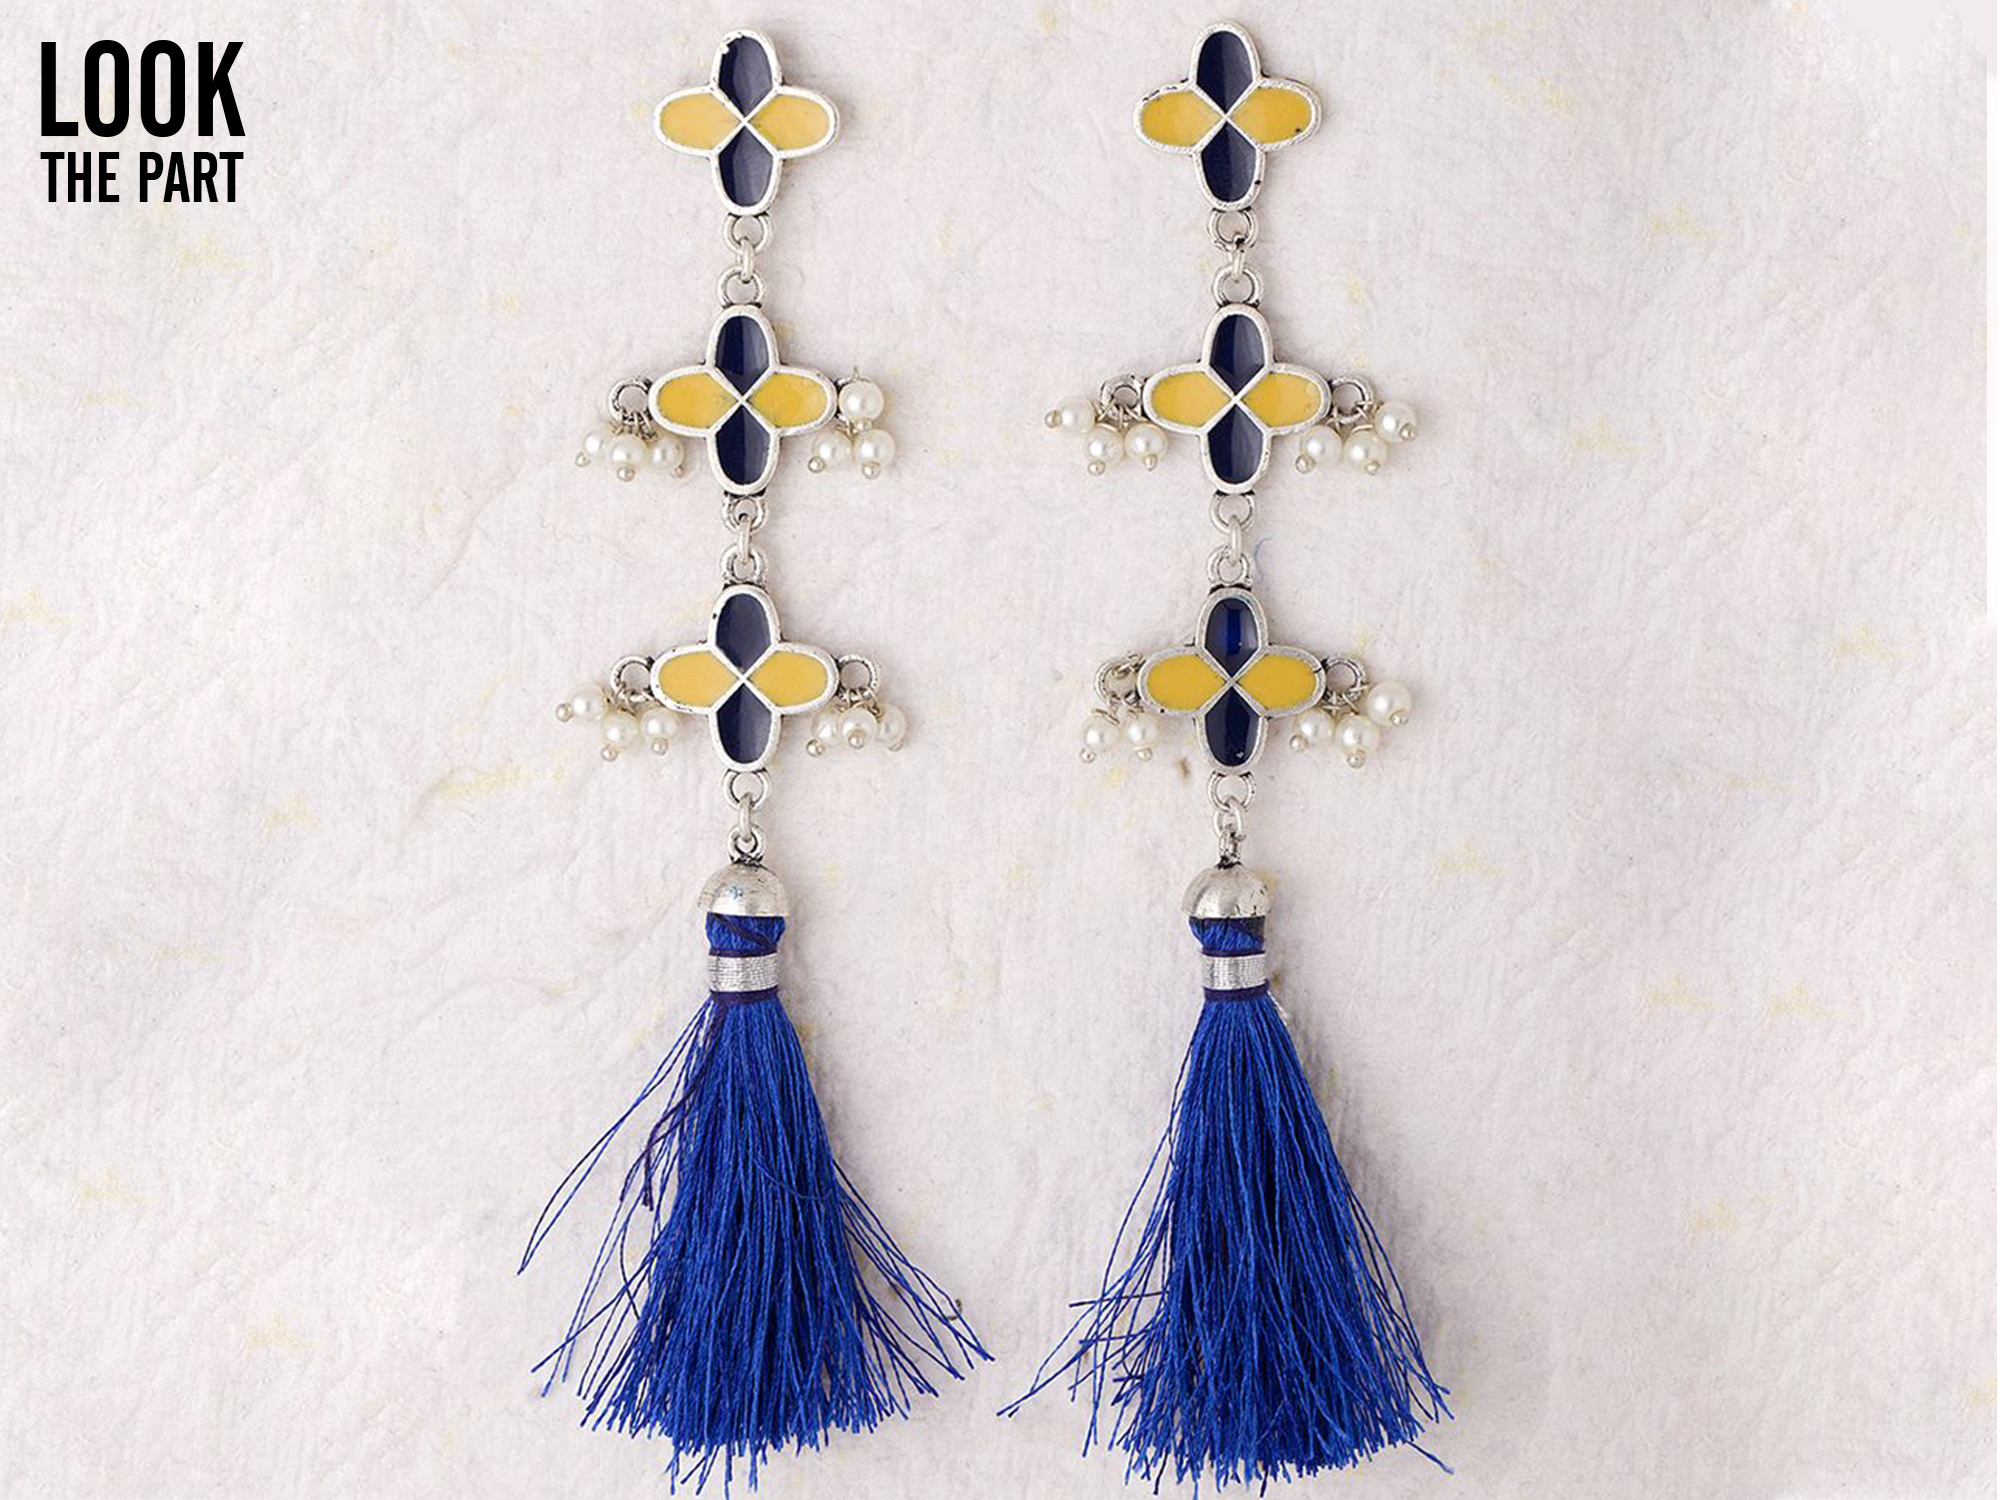 silver tone danglers adorned with enamel work